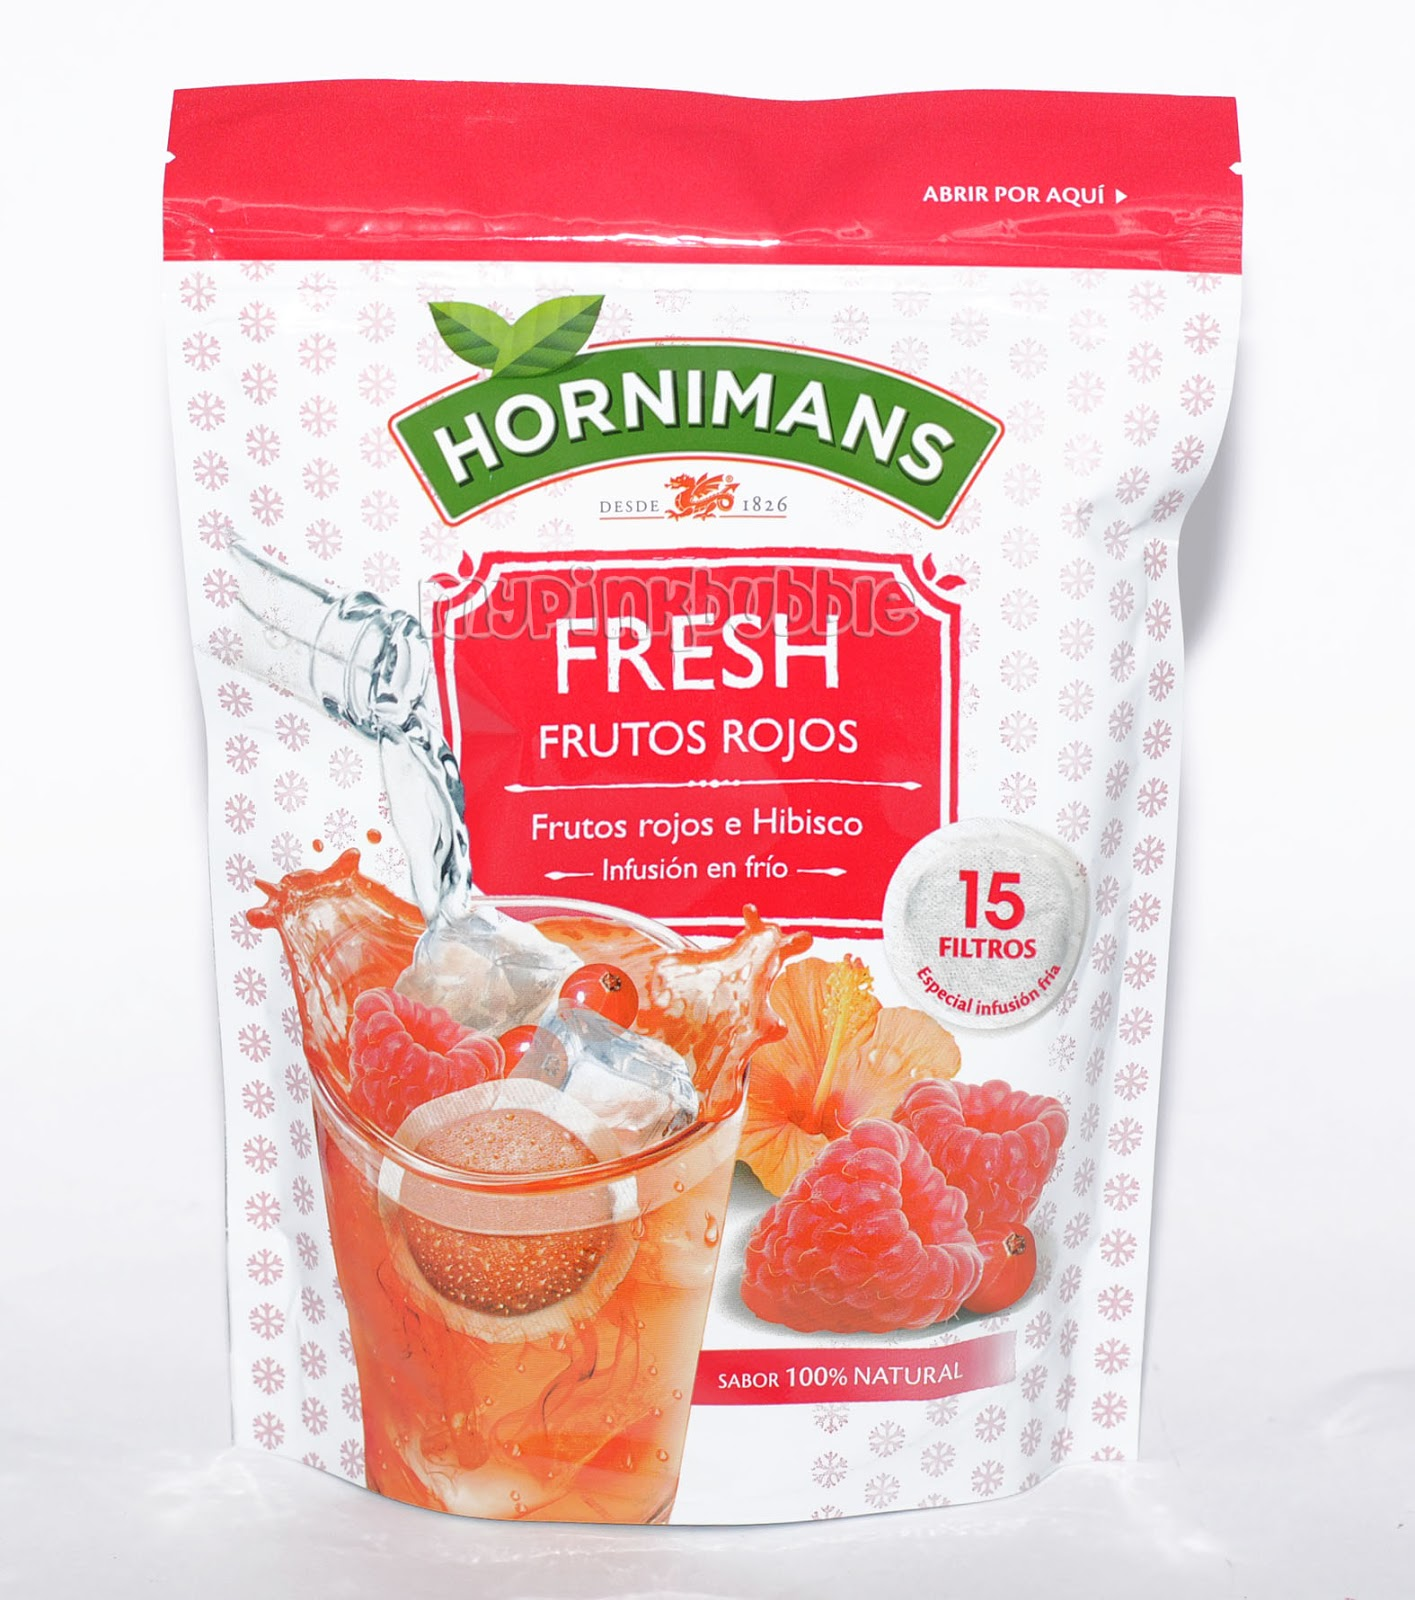 Hornimans Fresh frutos rojos